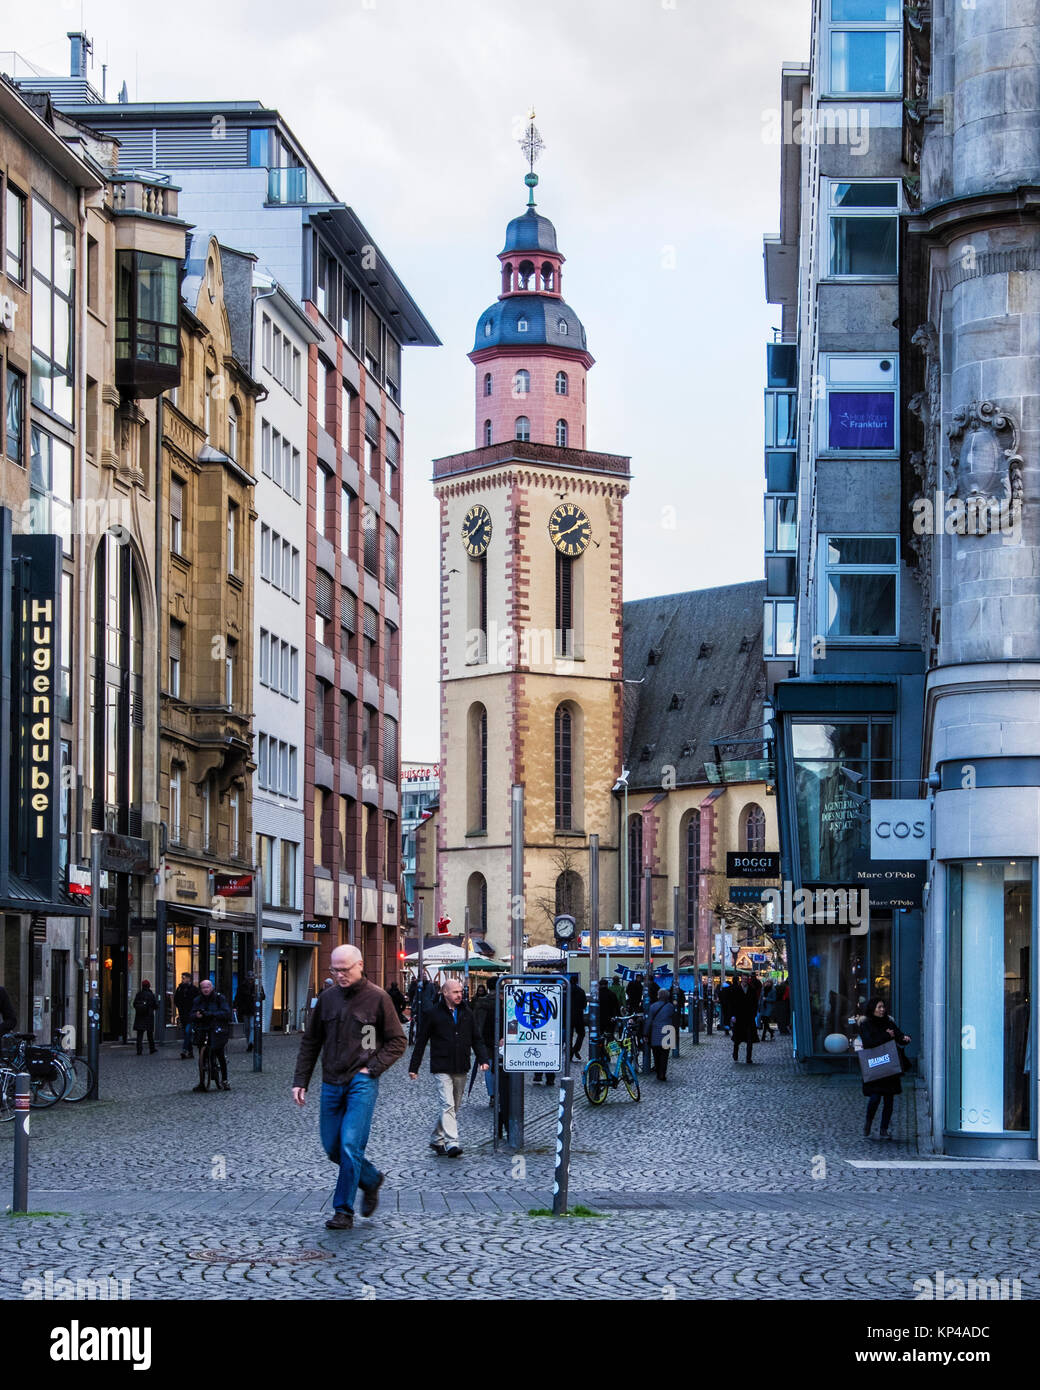 Frankfurt am Main, Hessen.Stein Road pedestrianised street with shops & view of St. Catherine's Baroque - Stock Image